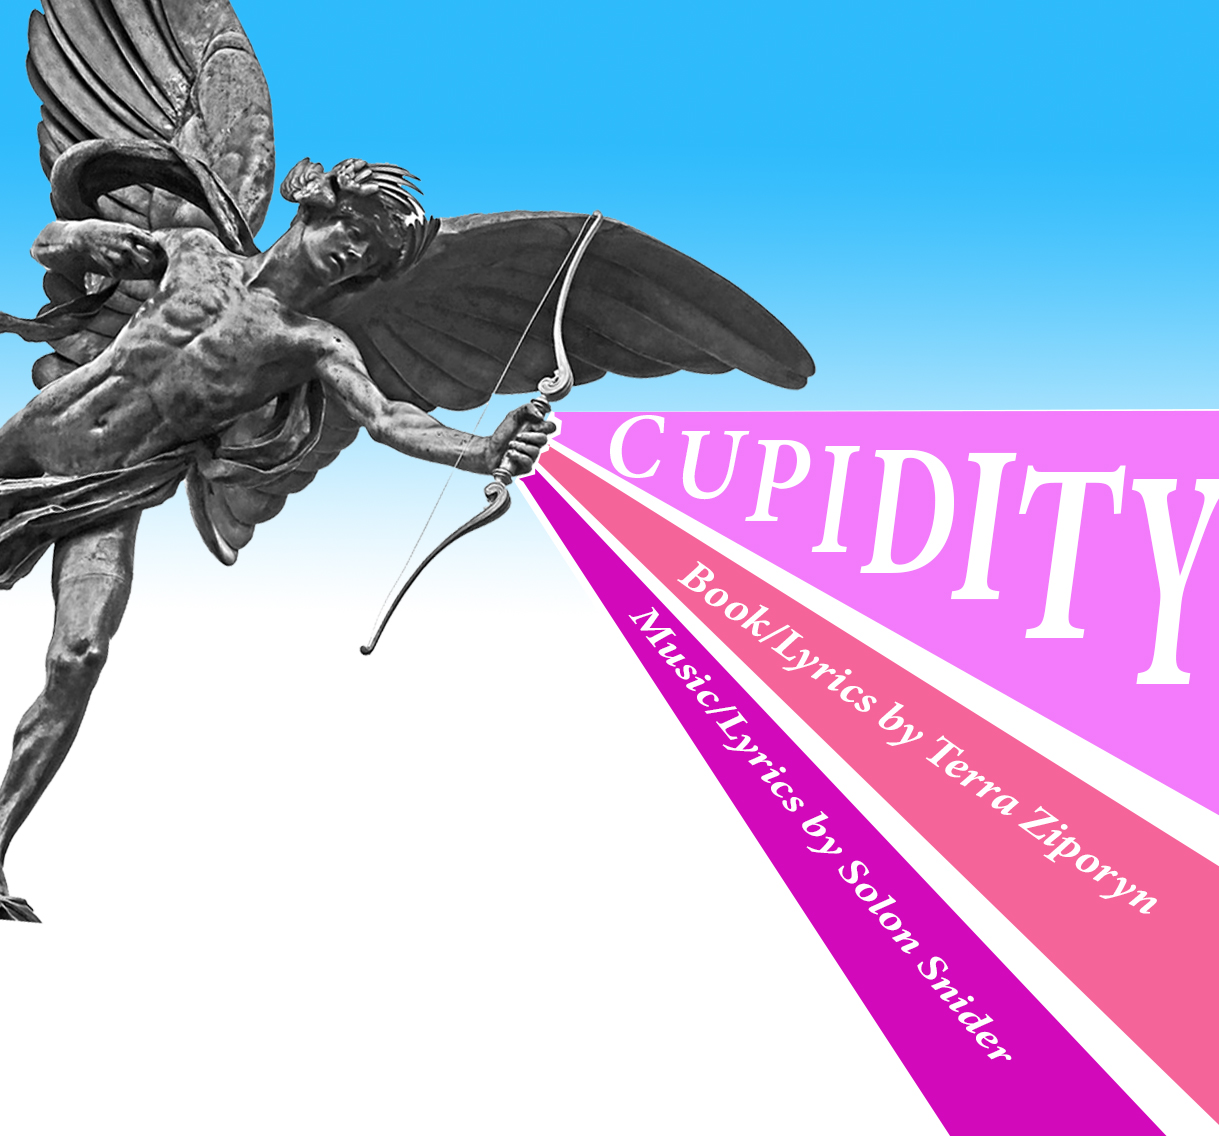 CUPIDITY draft poster